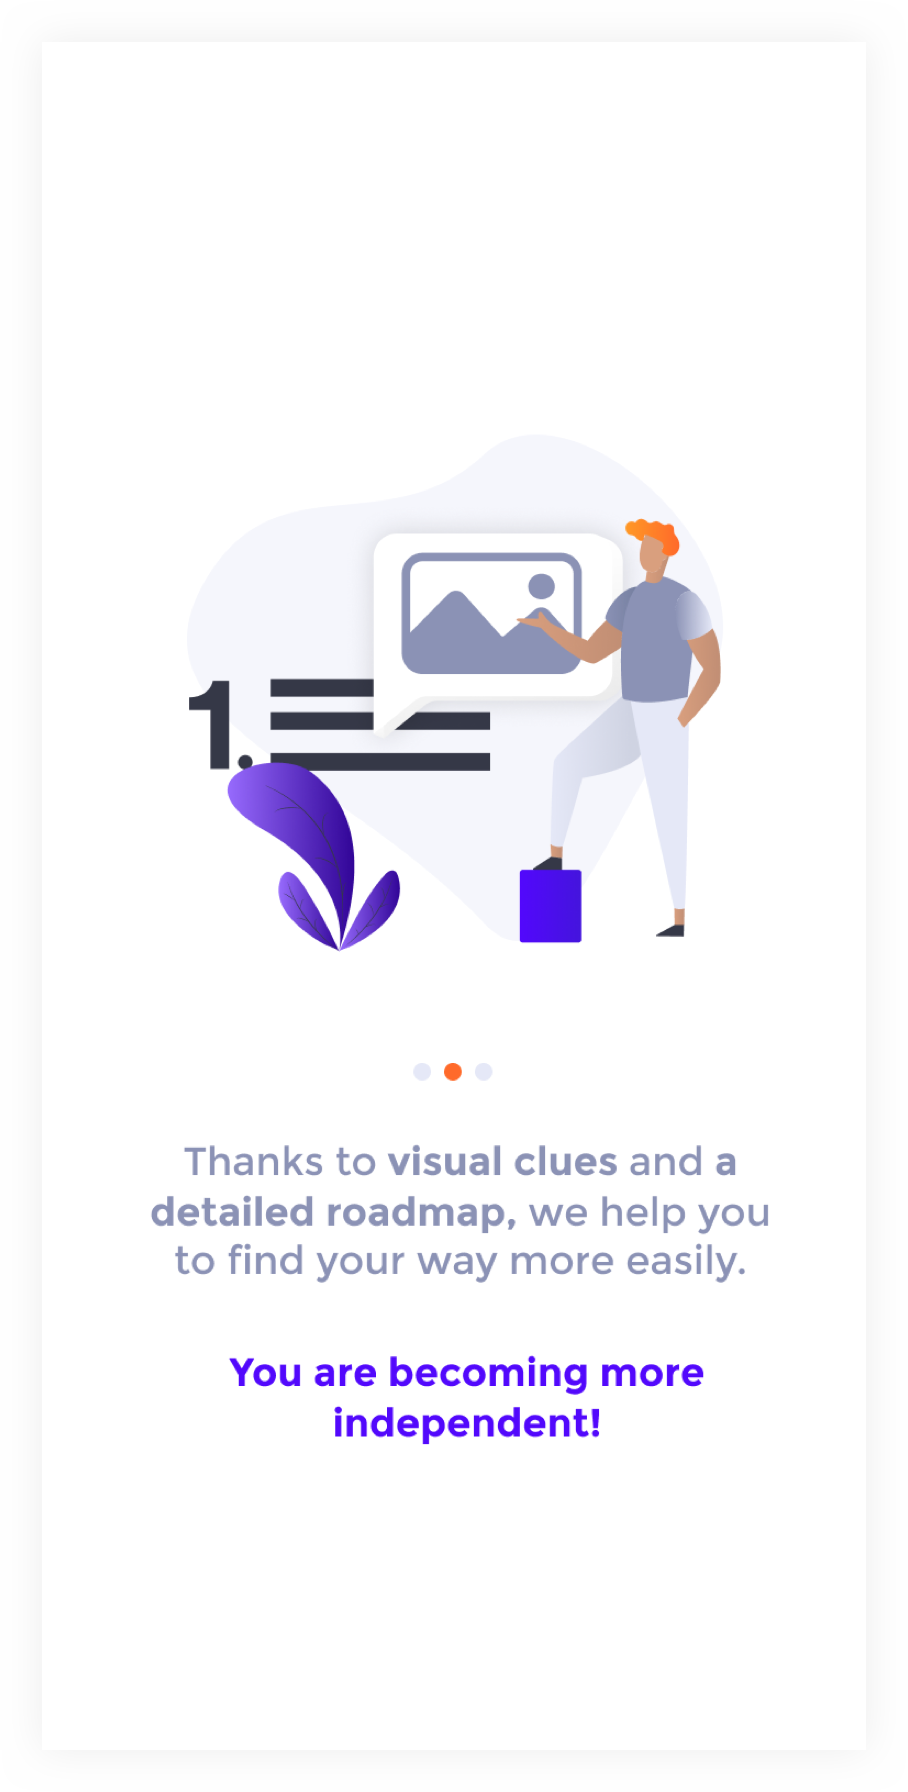 Onboarding screen 1 : illustration with a man that shows an image